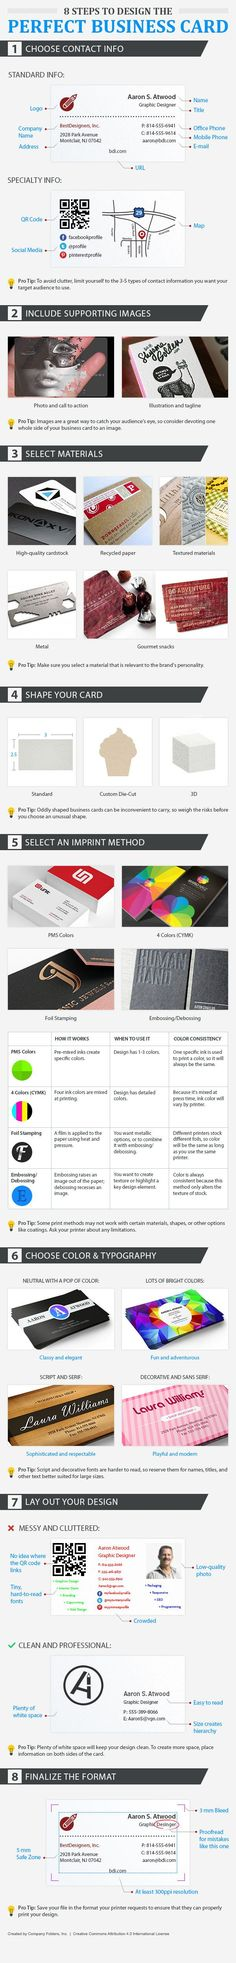 Business infographic & data visualisation Business card design tips – infographic Infographic Description Business card design tips – infographic – Infographic Source –